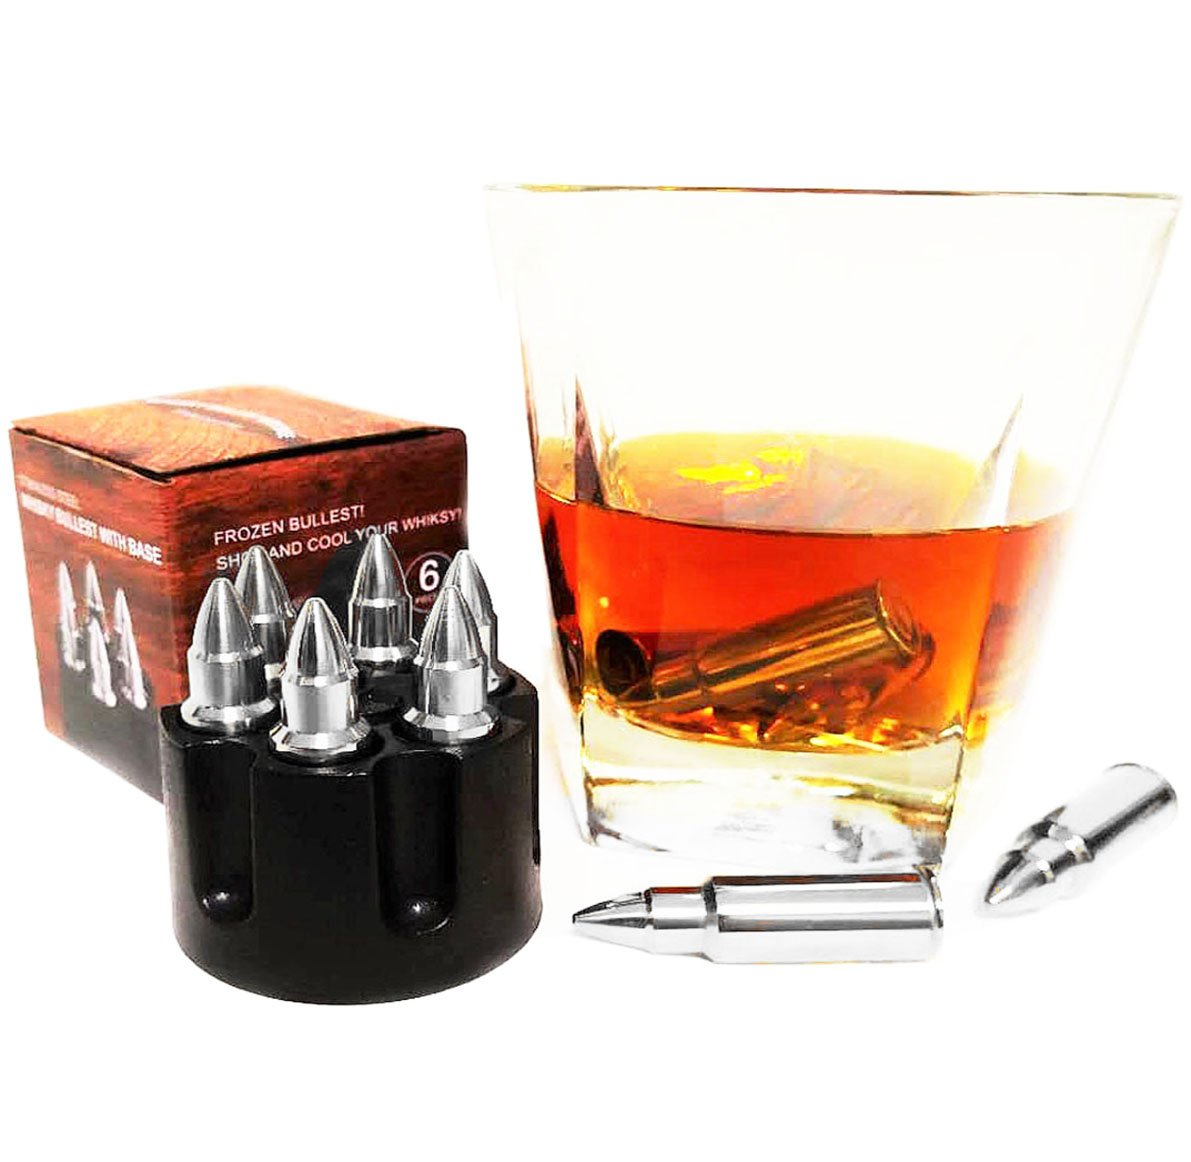 Silver Bullet Whiskey Stone With Base, Set of 6 Stainless Steel Wine Chiller Reusable Ice Cube Bar Tool Set, Best Gift Set for Father's Day (silver) by NEWDUS